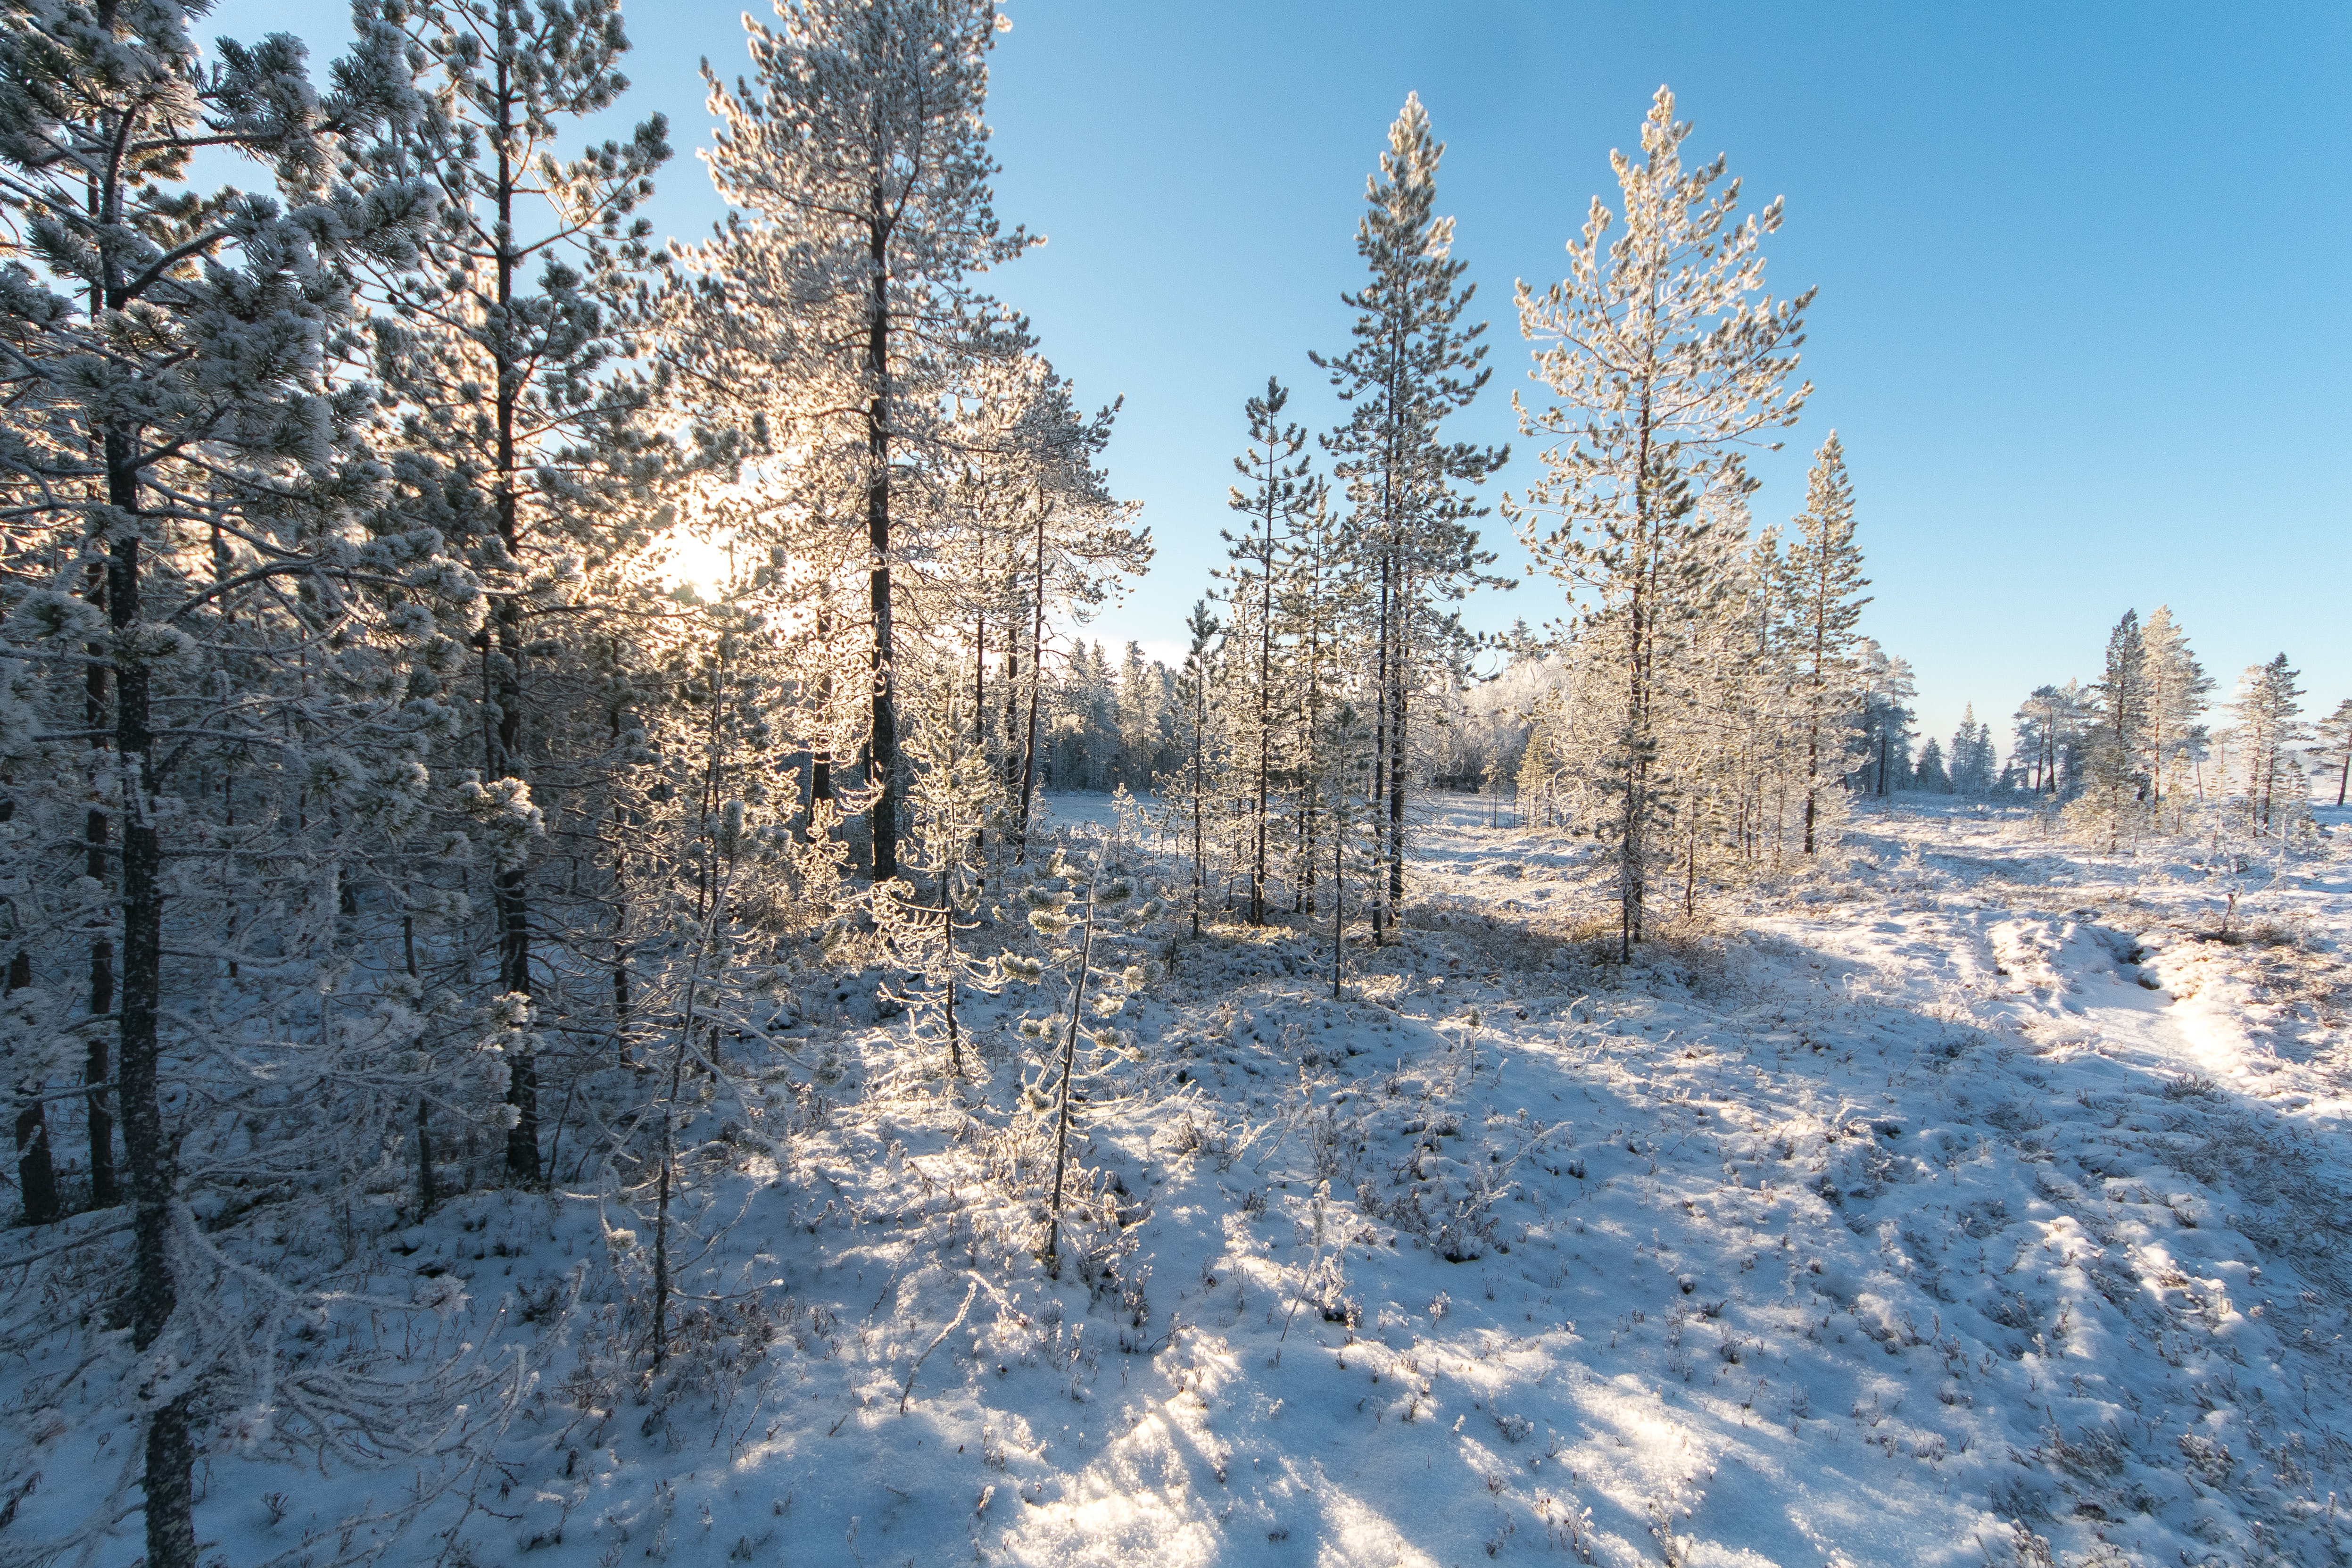 White Pine Trees, Branches, Pines, Winter landscape, Winter, HQ Photo